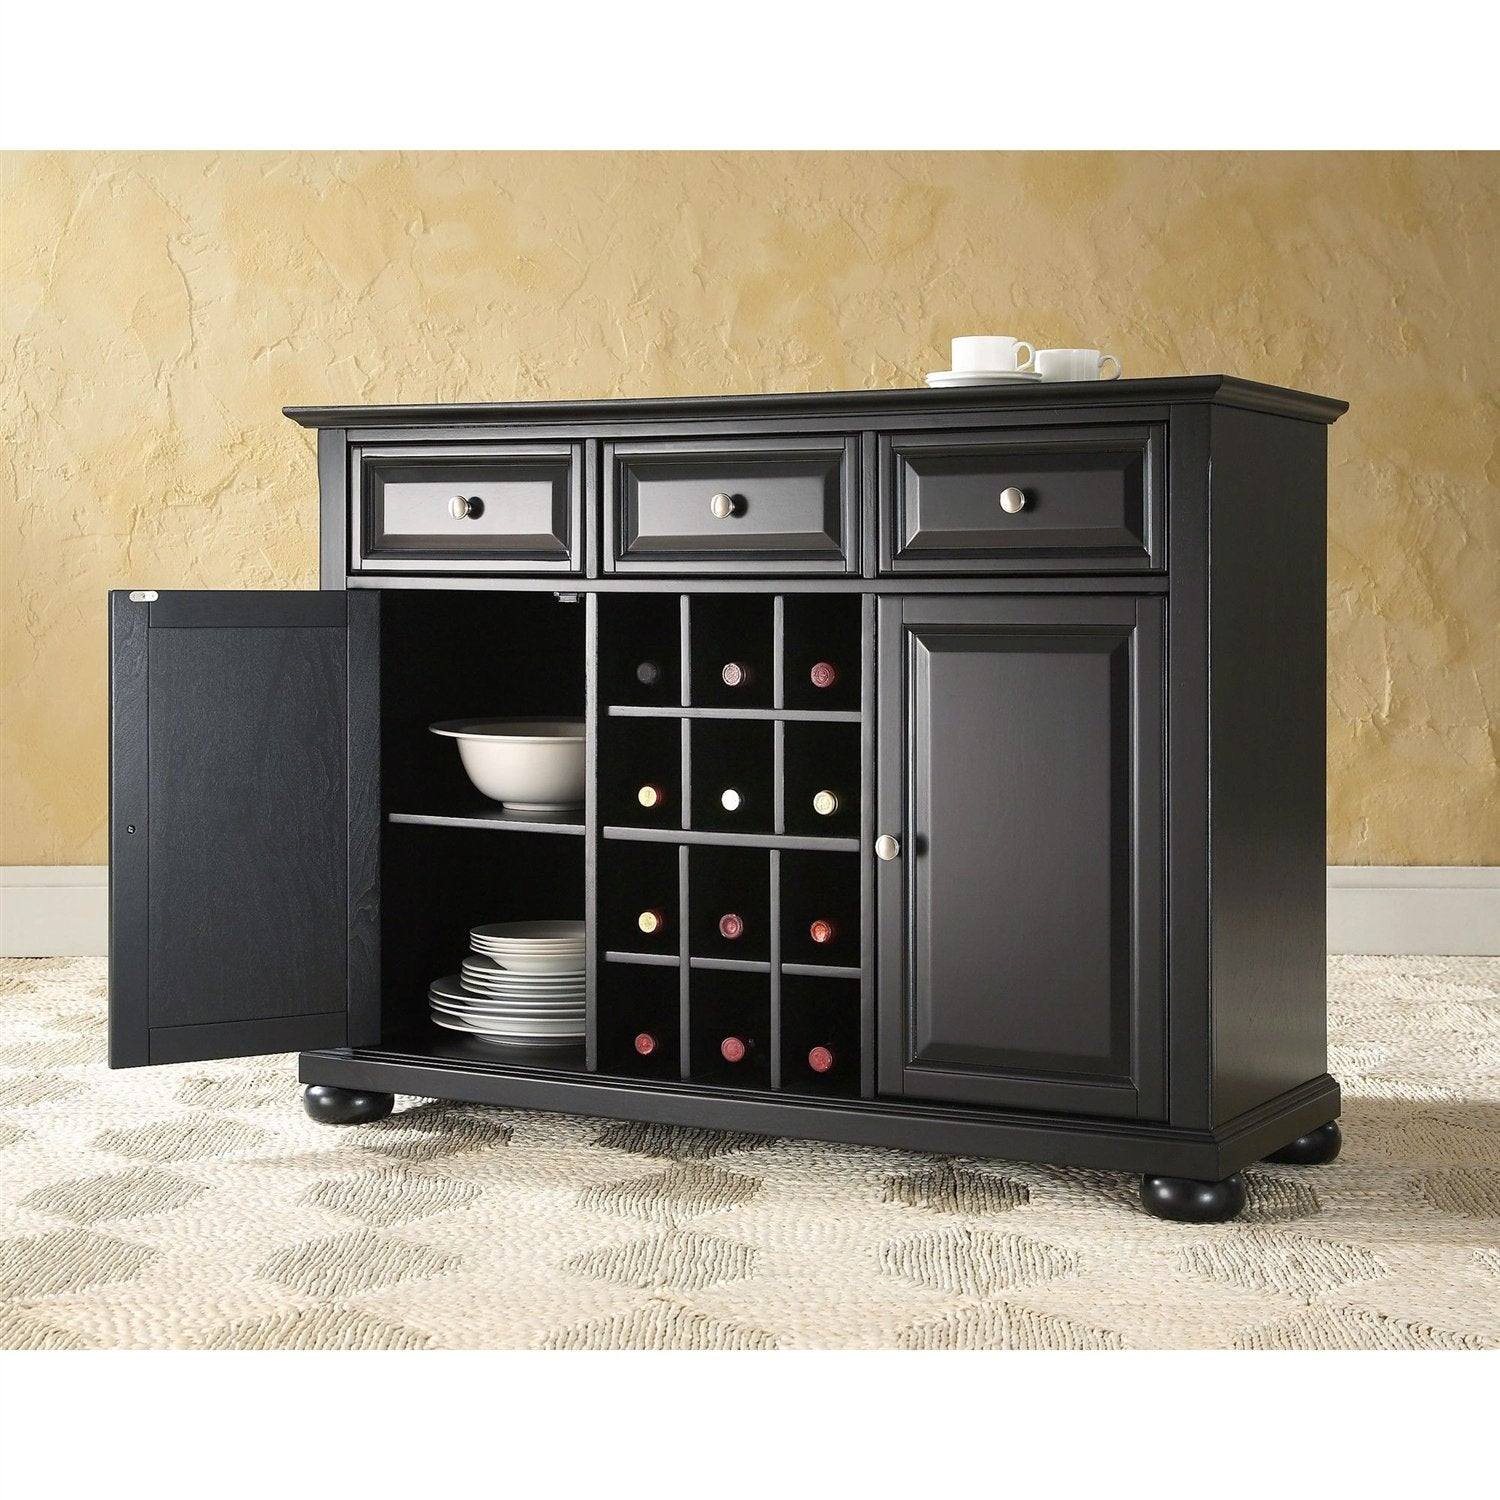 Black Dining Room Buffet Sideboard Cabinet with Wine Storage - SideBoards & Buffets